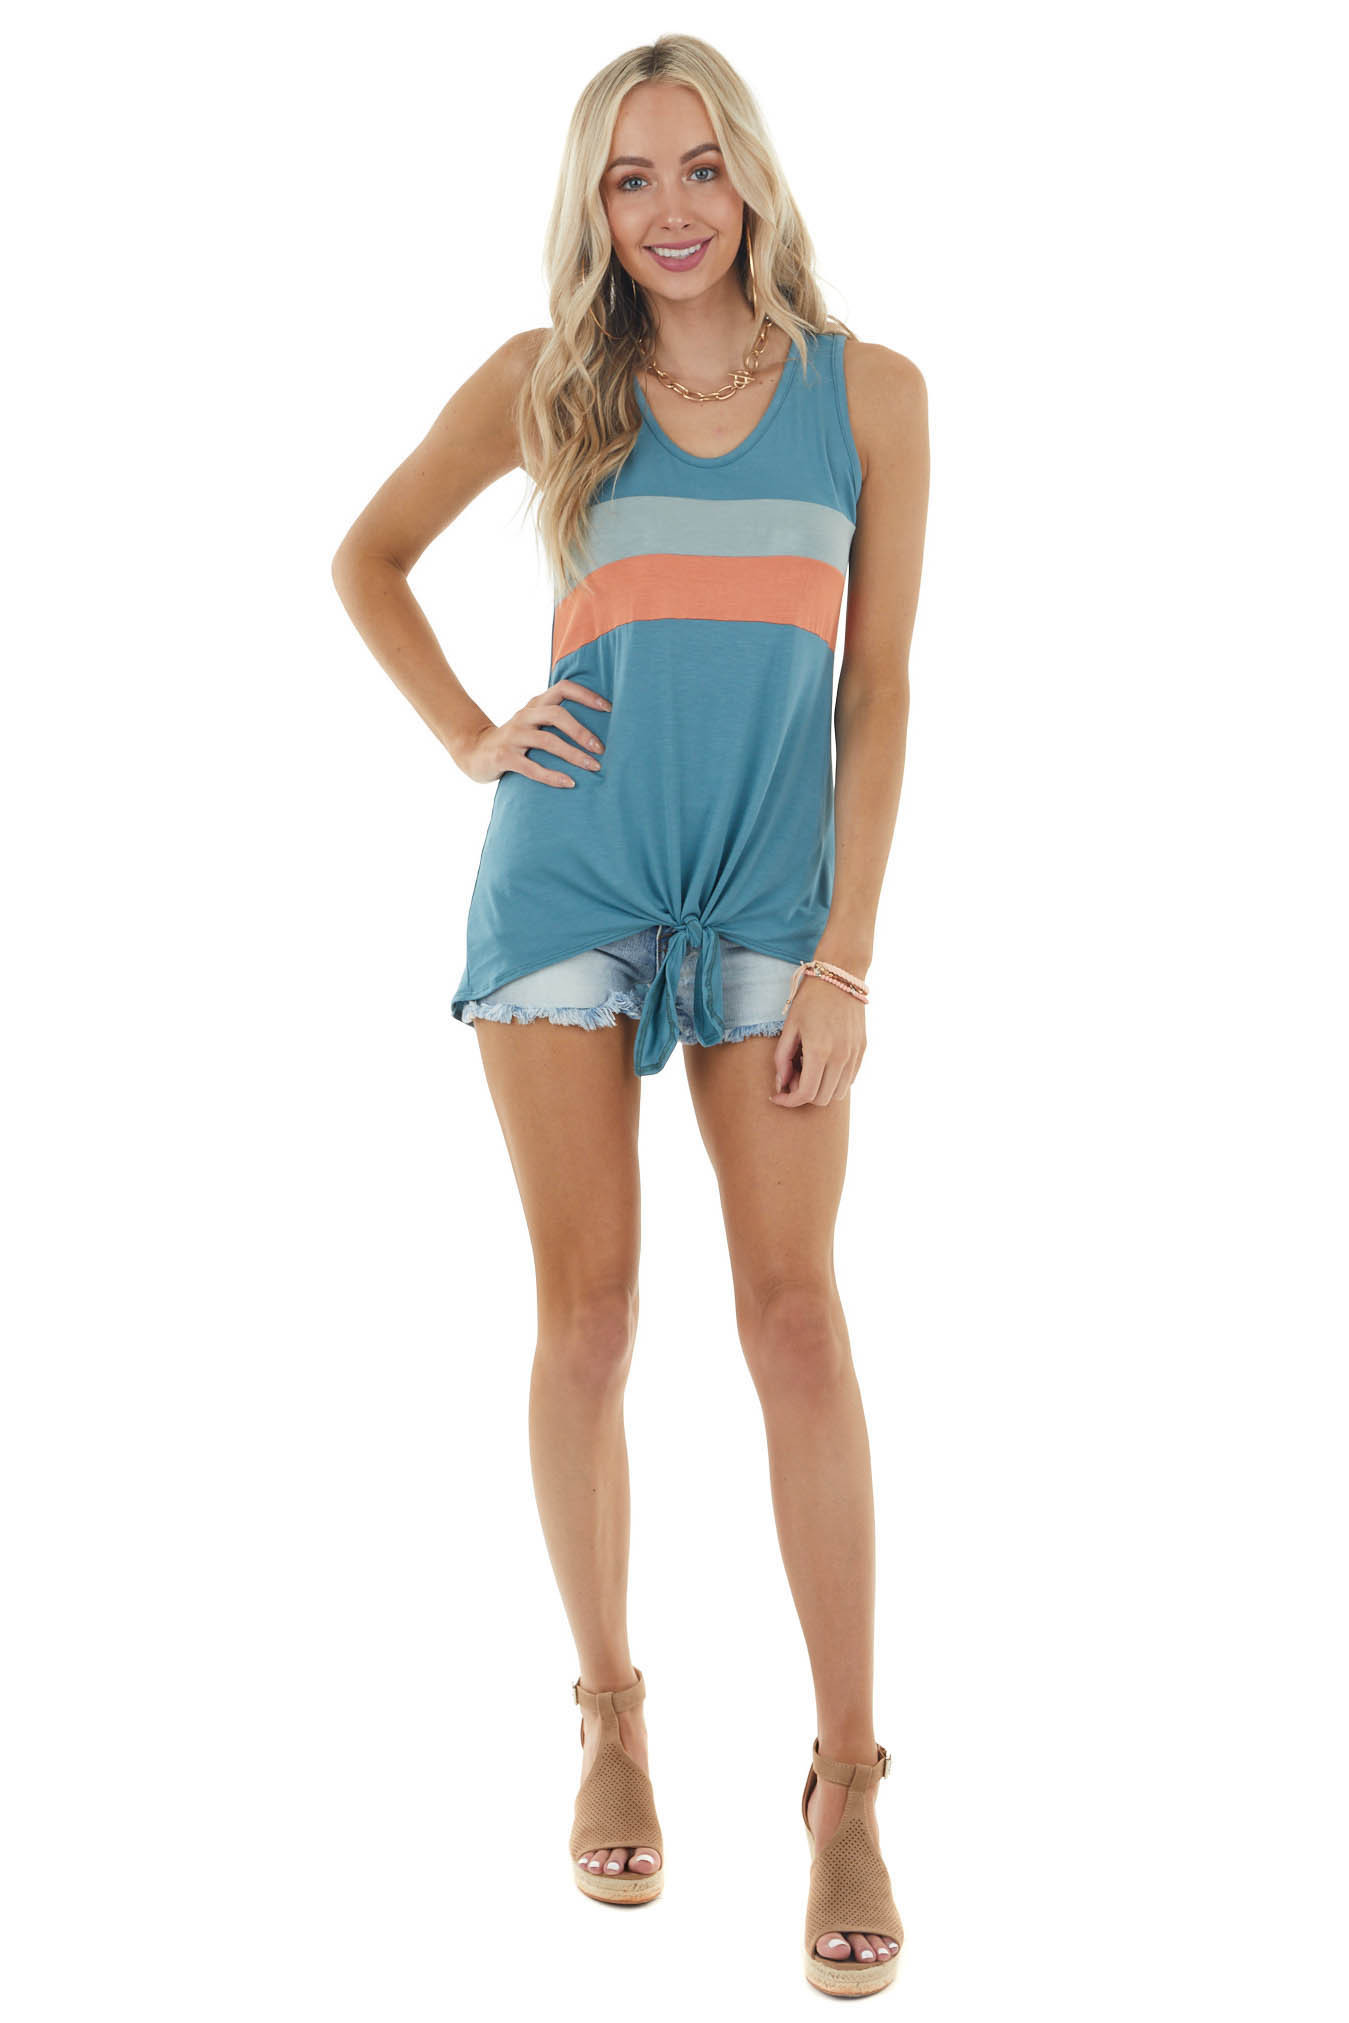 Lagoon Colorblock Sleeveless Top with Front Tie Detail